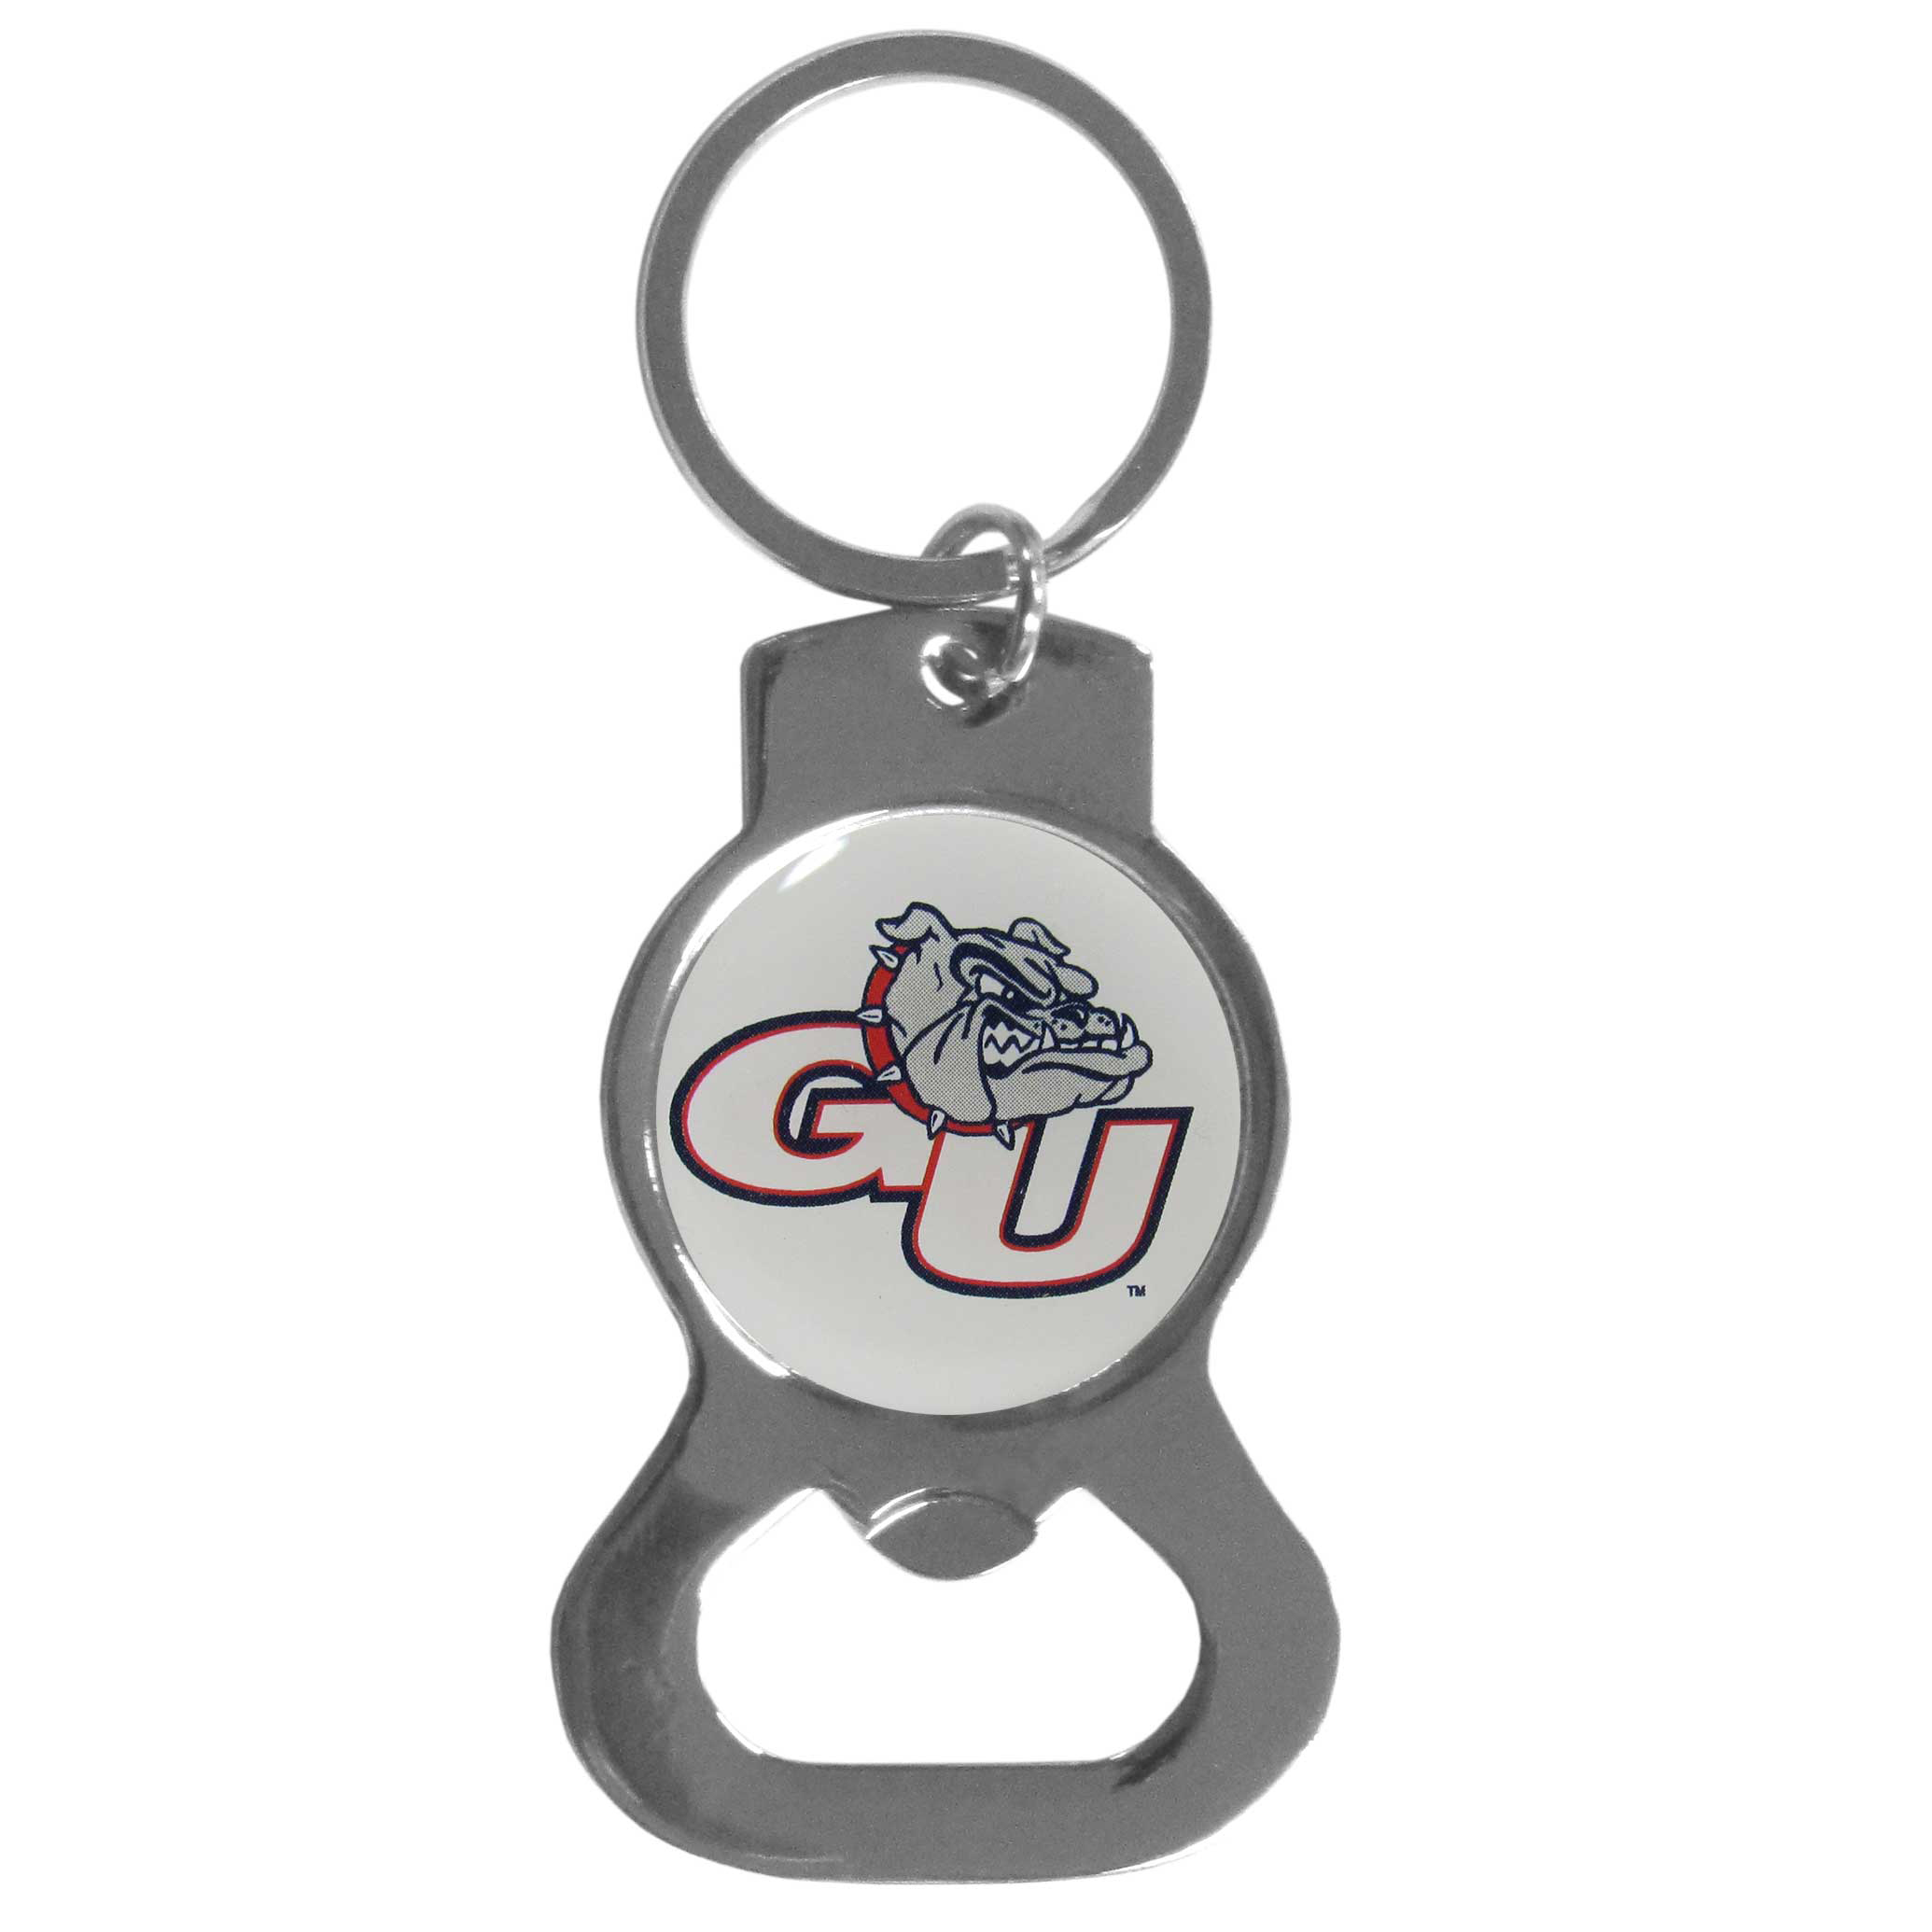 Gonzaga Bulldogs Bottle Opener Key Chain - Hate searching for a bottle opener, get our Gonzaga Bulldogs bottle opener key chain and never have to search again! The high polish key chain features a bright team emblem.